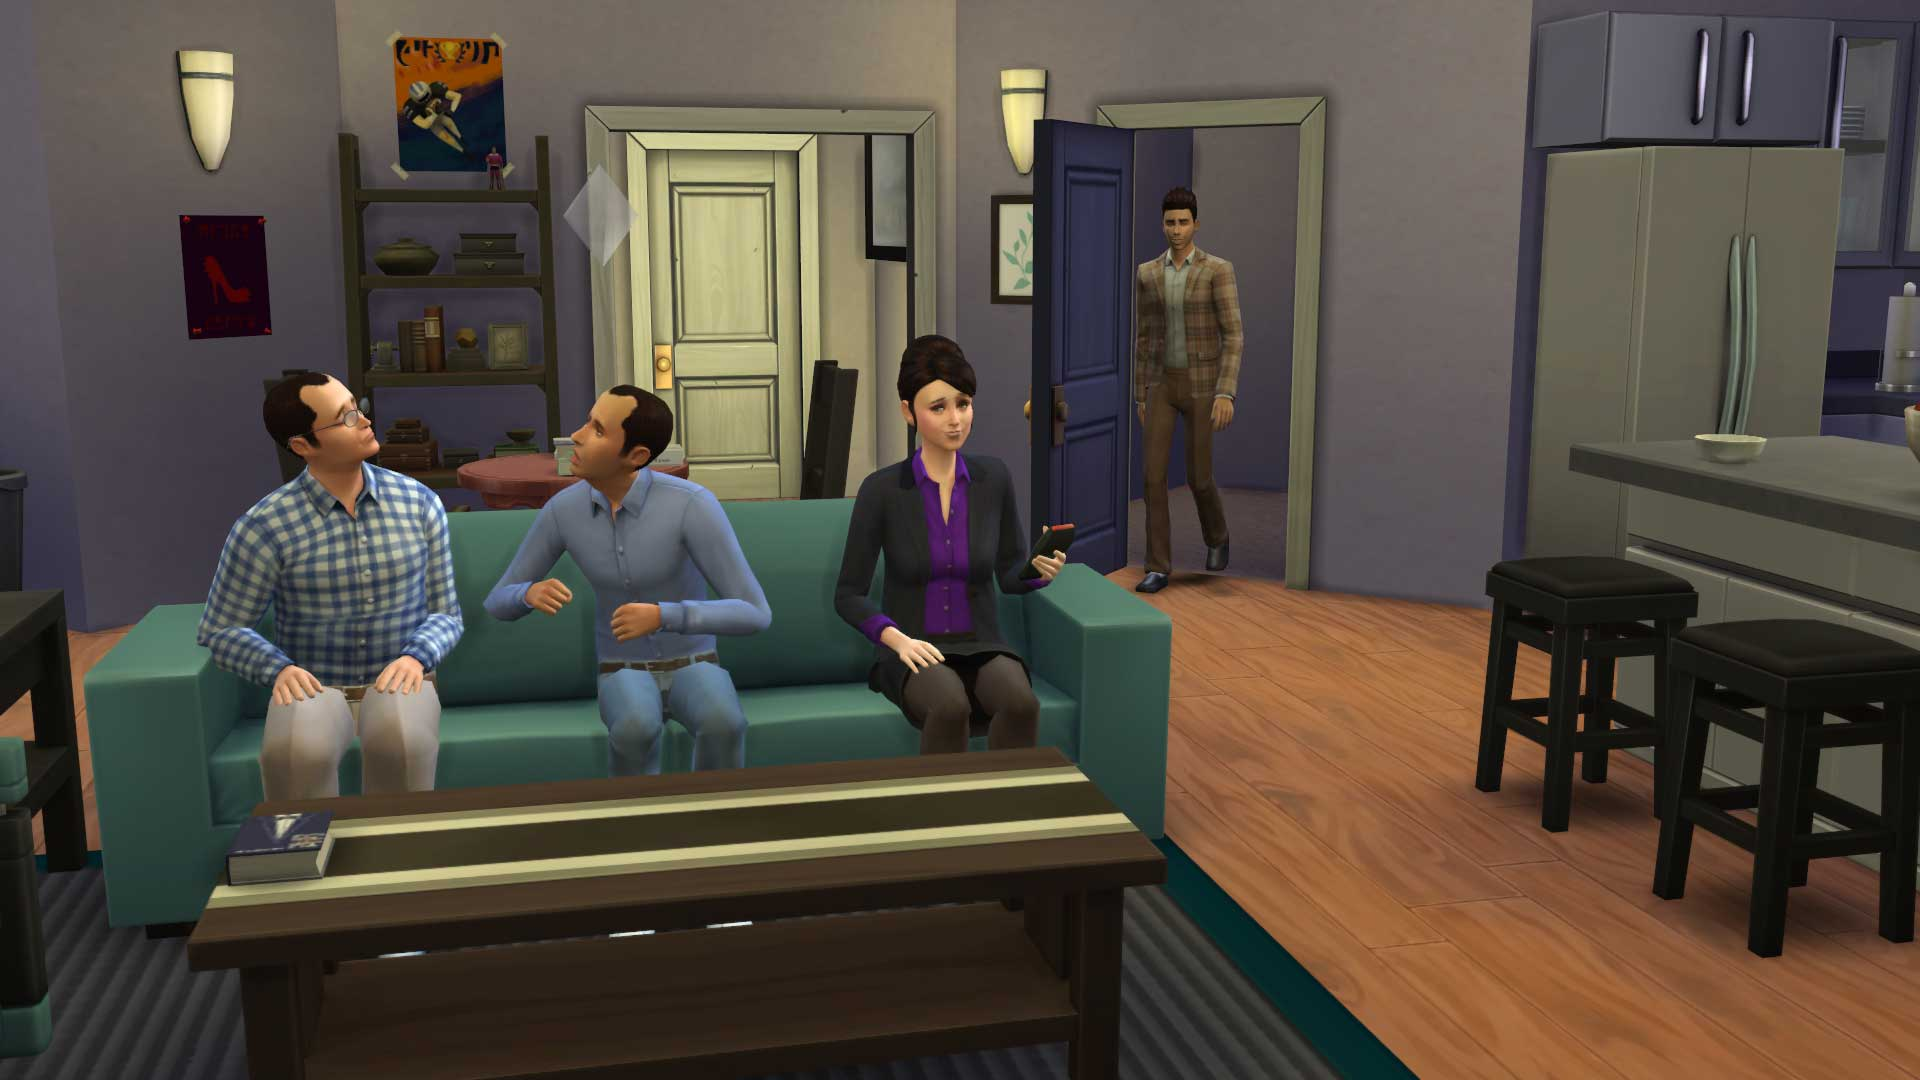 the_sims_4_seinfeld_3